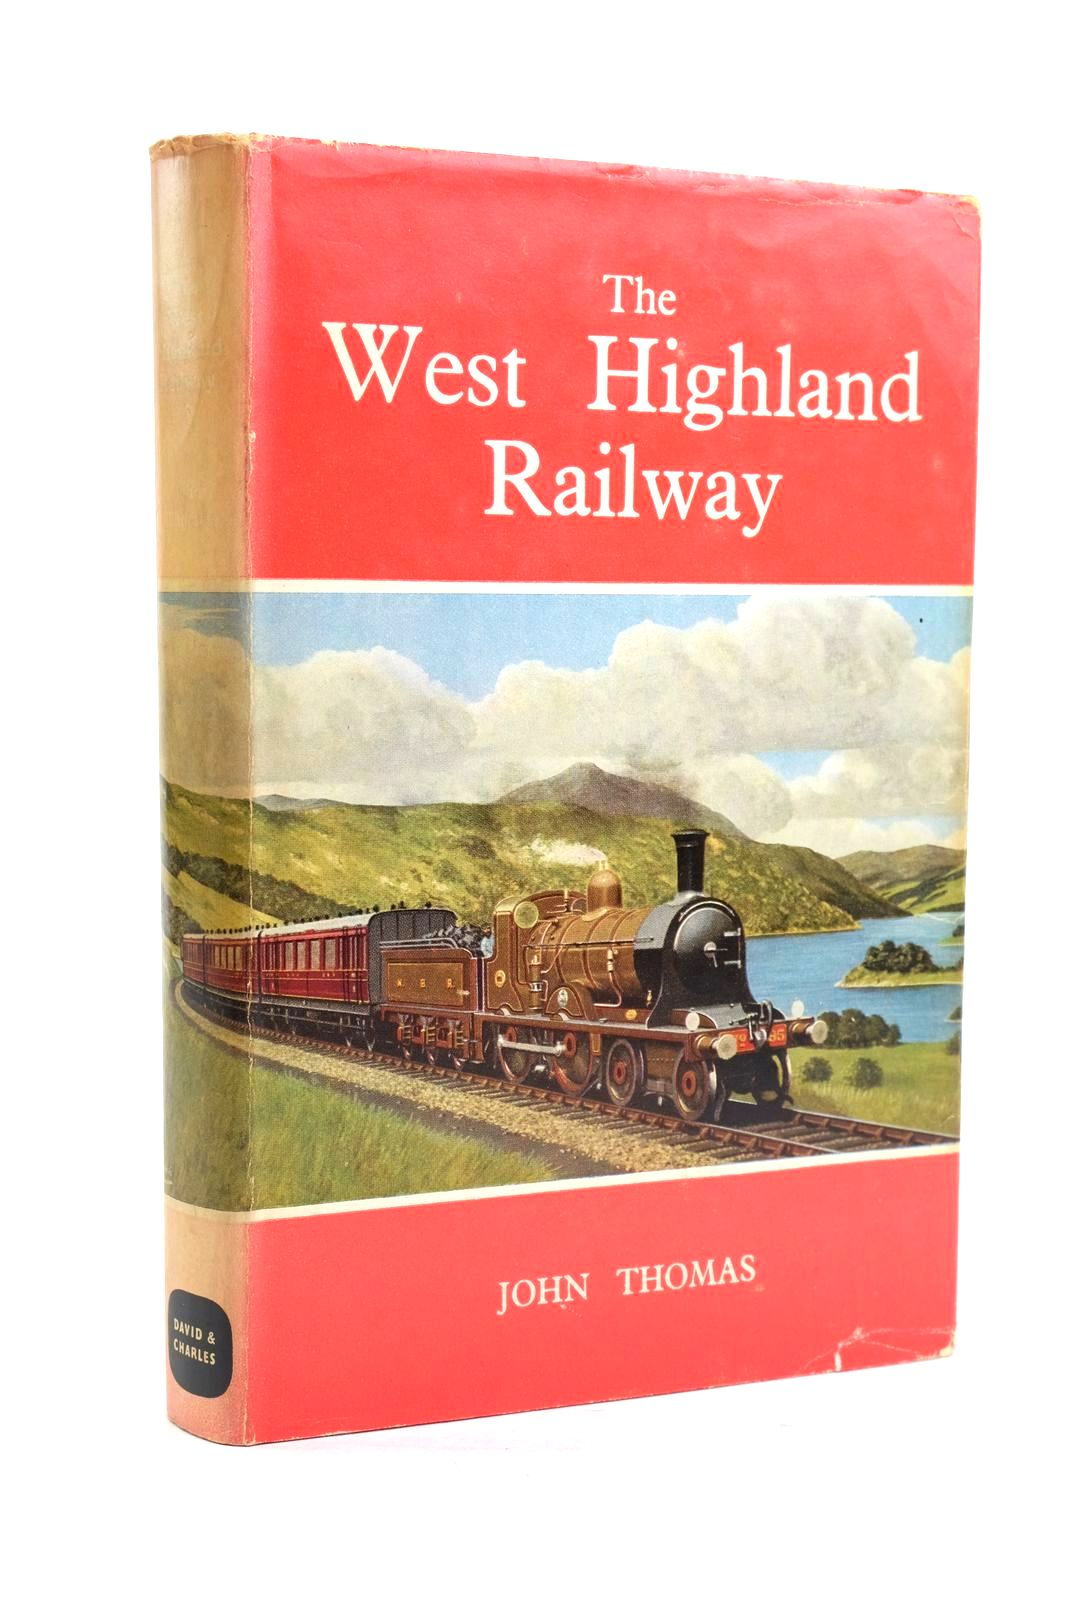 Photo of THE WEST HIGHLAND RAILWAY written by Thomas, John published by David & Charles (STOCK CODE: 1319940)  for sale by Stella & Rose's Books